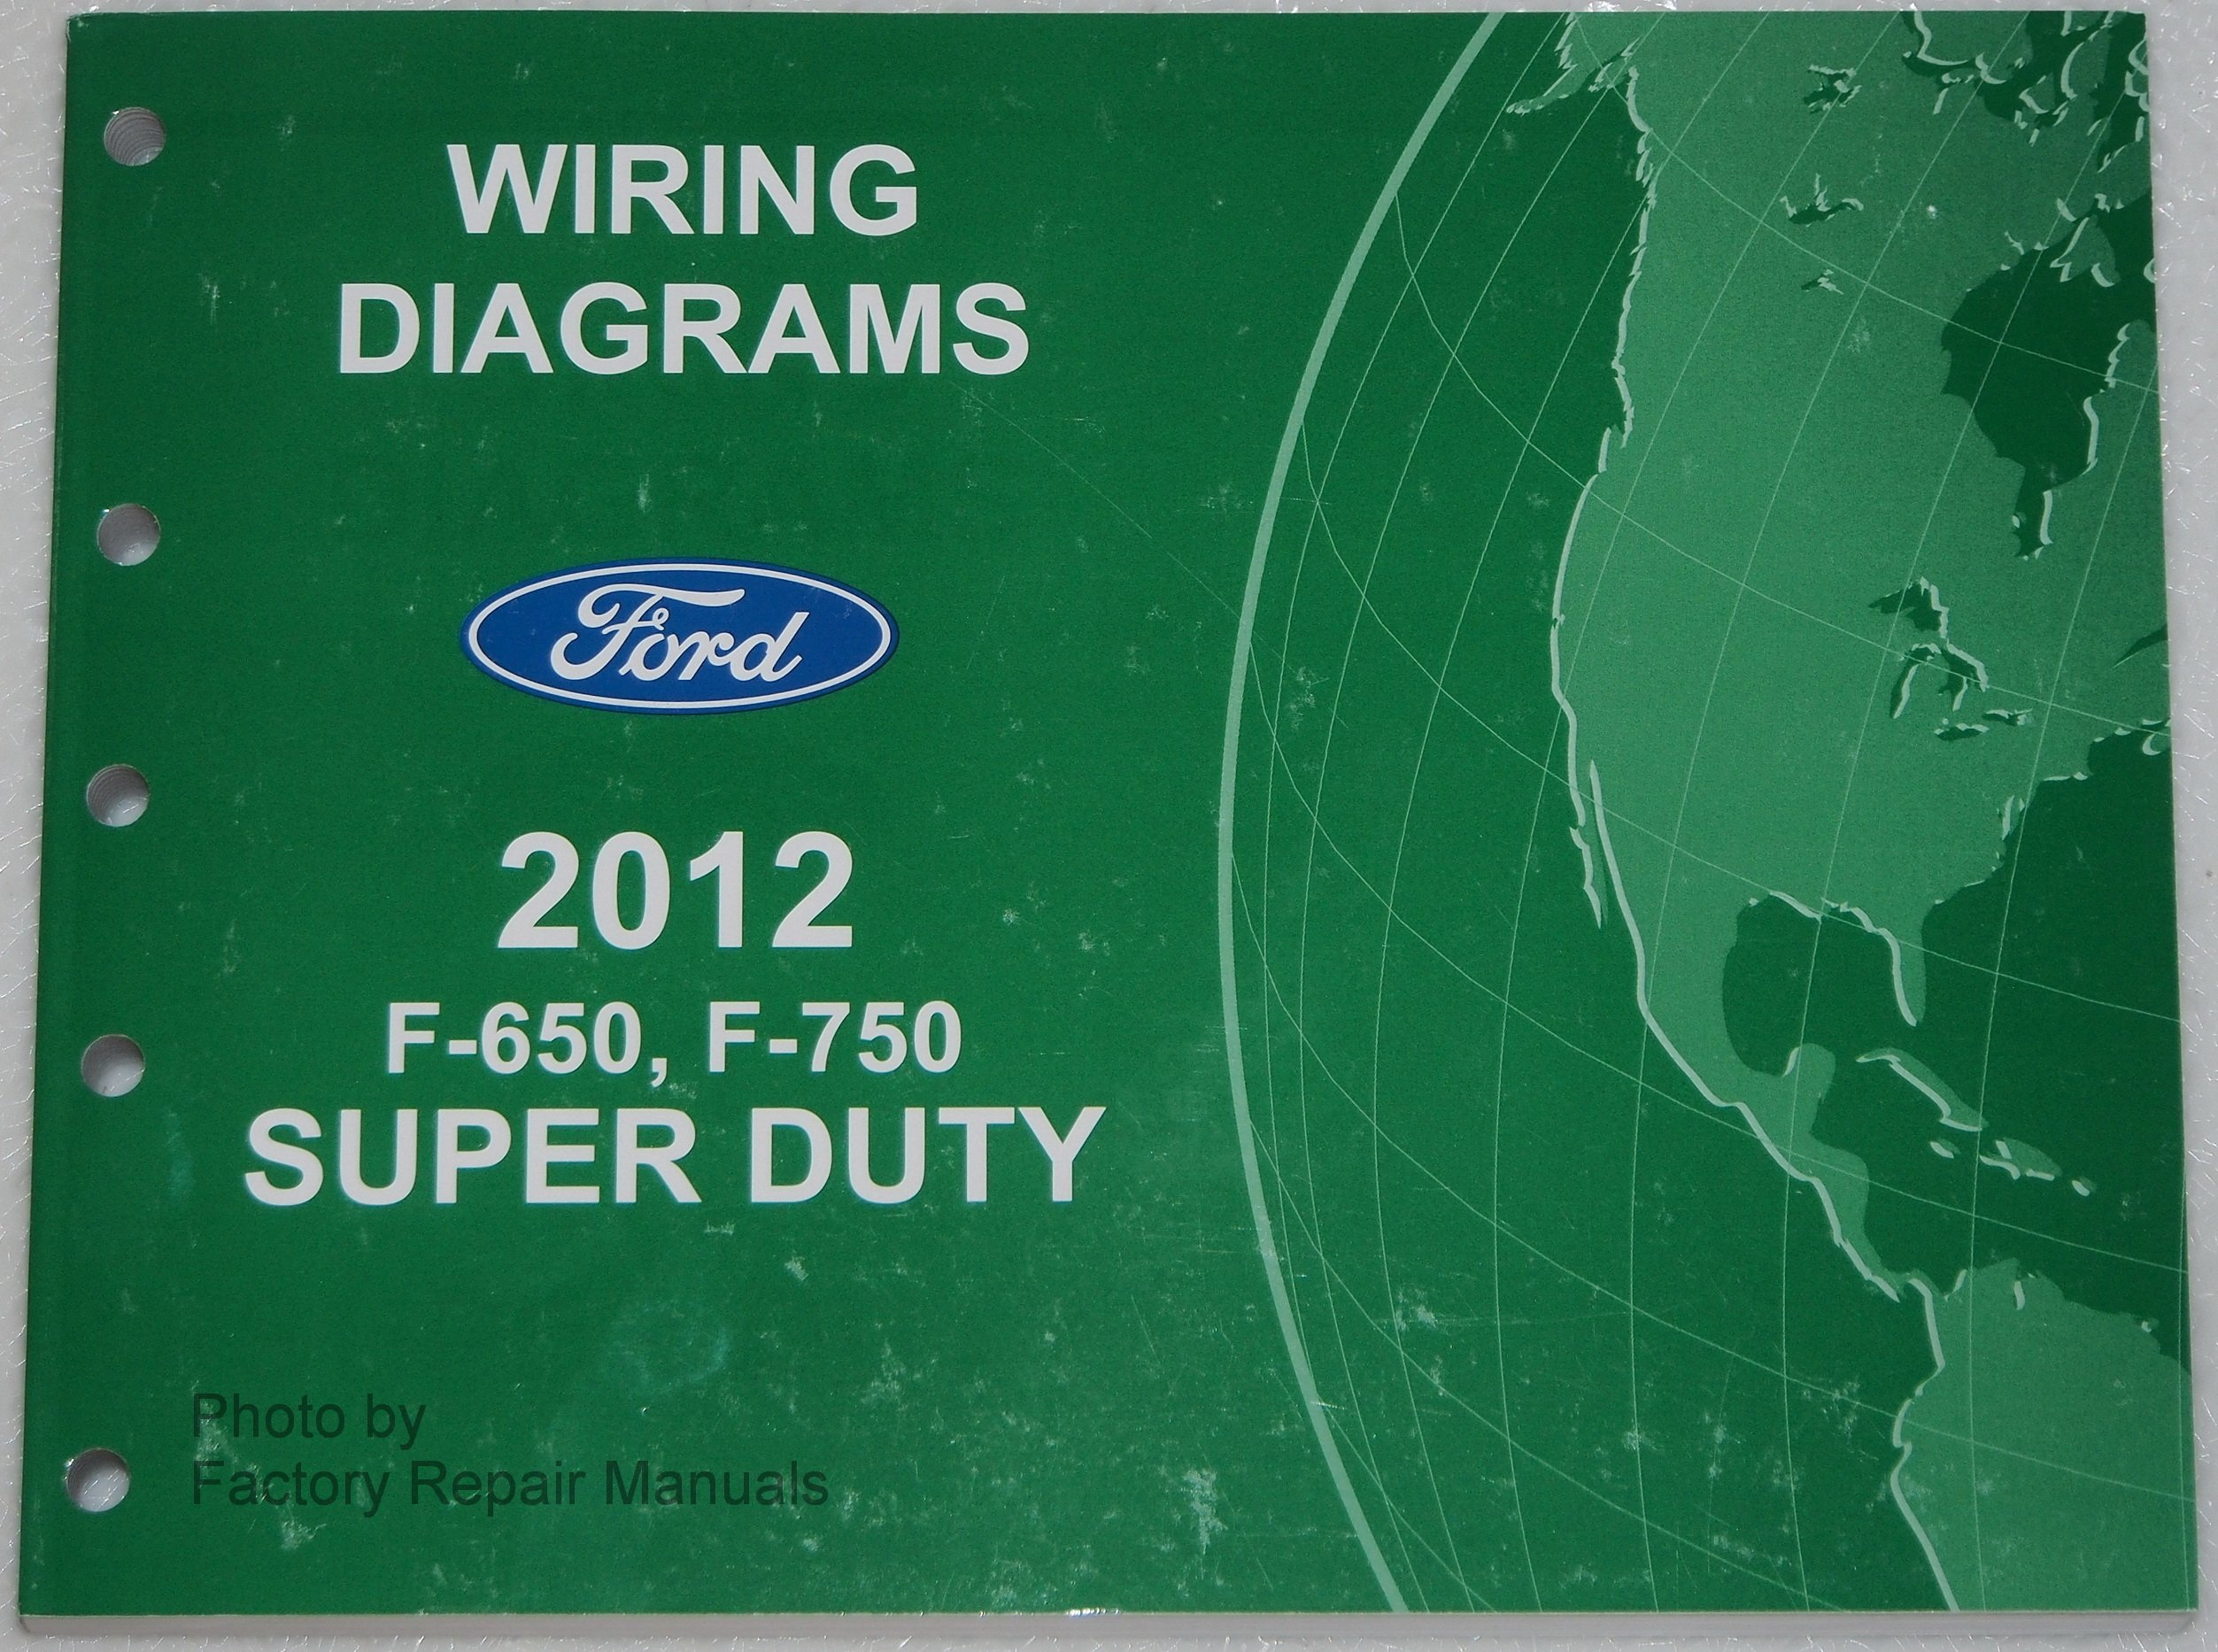 91KkFIScY%2BL 2012 f650 f750 wiring diagram ford motor company amazon com books f750 wiring diagram at panicattacktreatment.co